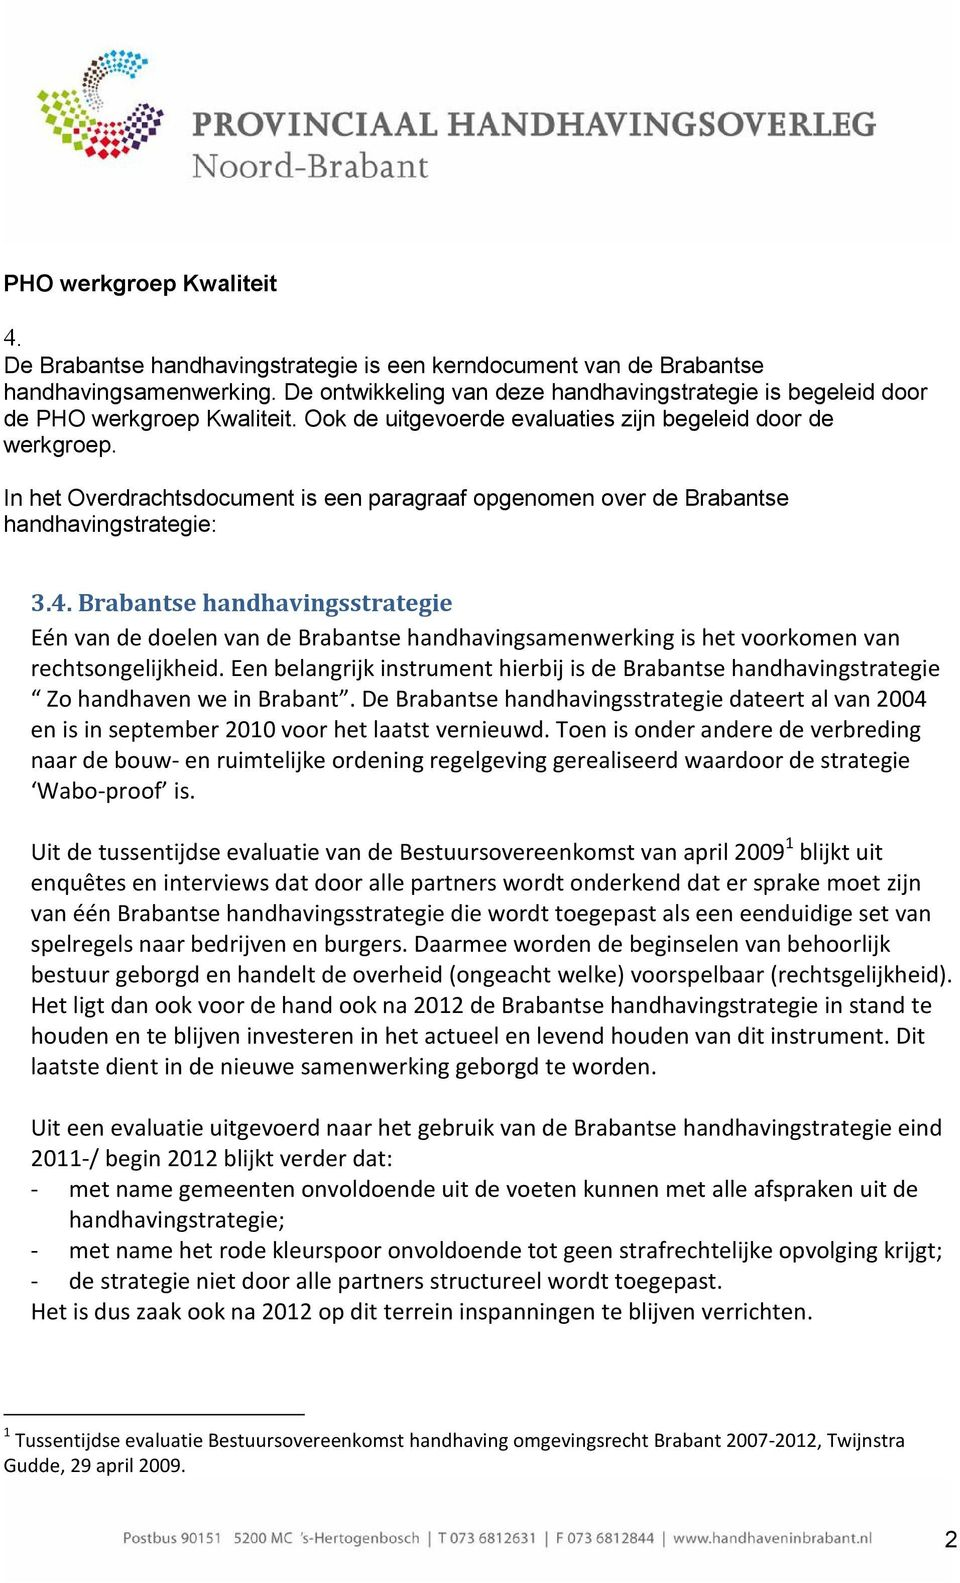 In het Overdrachtsdocument is een paragraaf opgenomen over de Brabantse handhavingstrategie: 3.4.